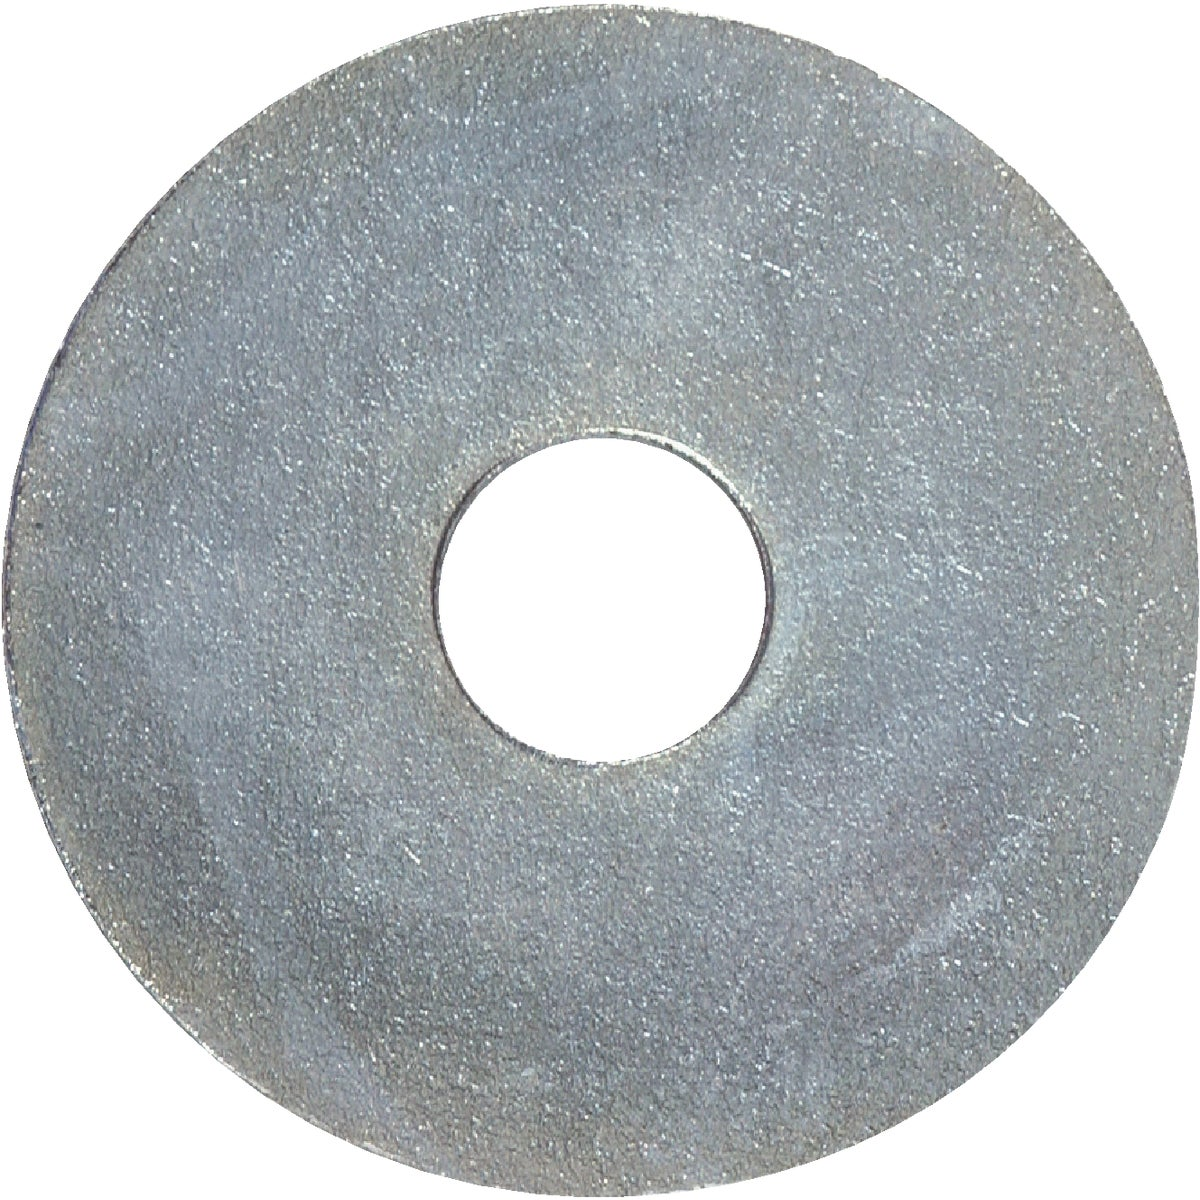 3/16X1 FENDER WASHER - 290003 by Hillman Fastener